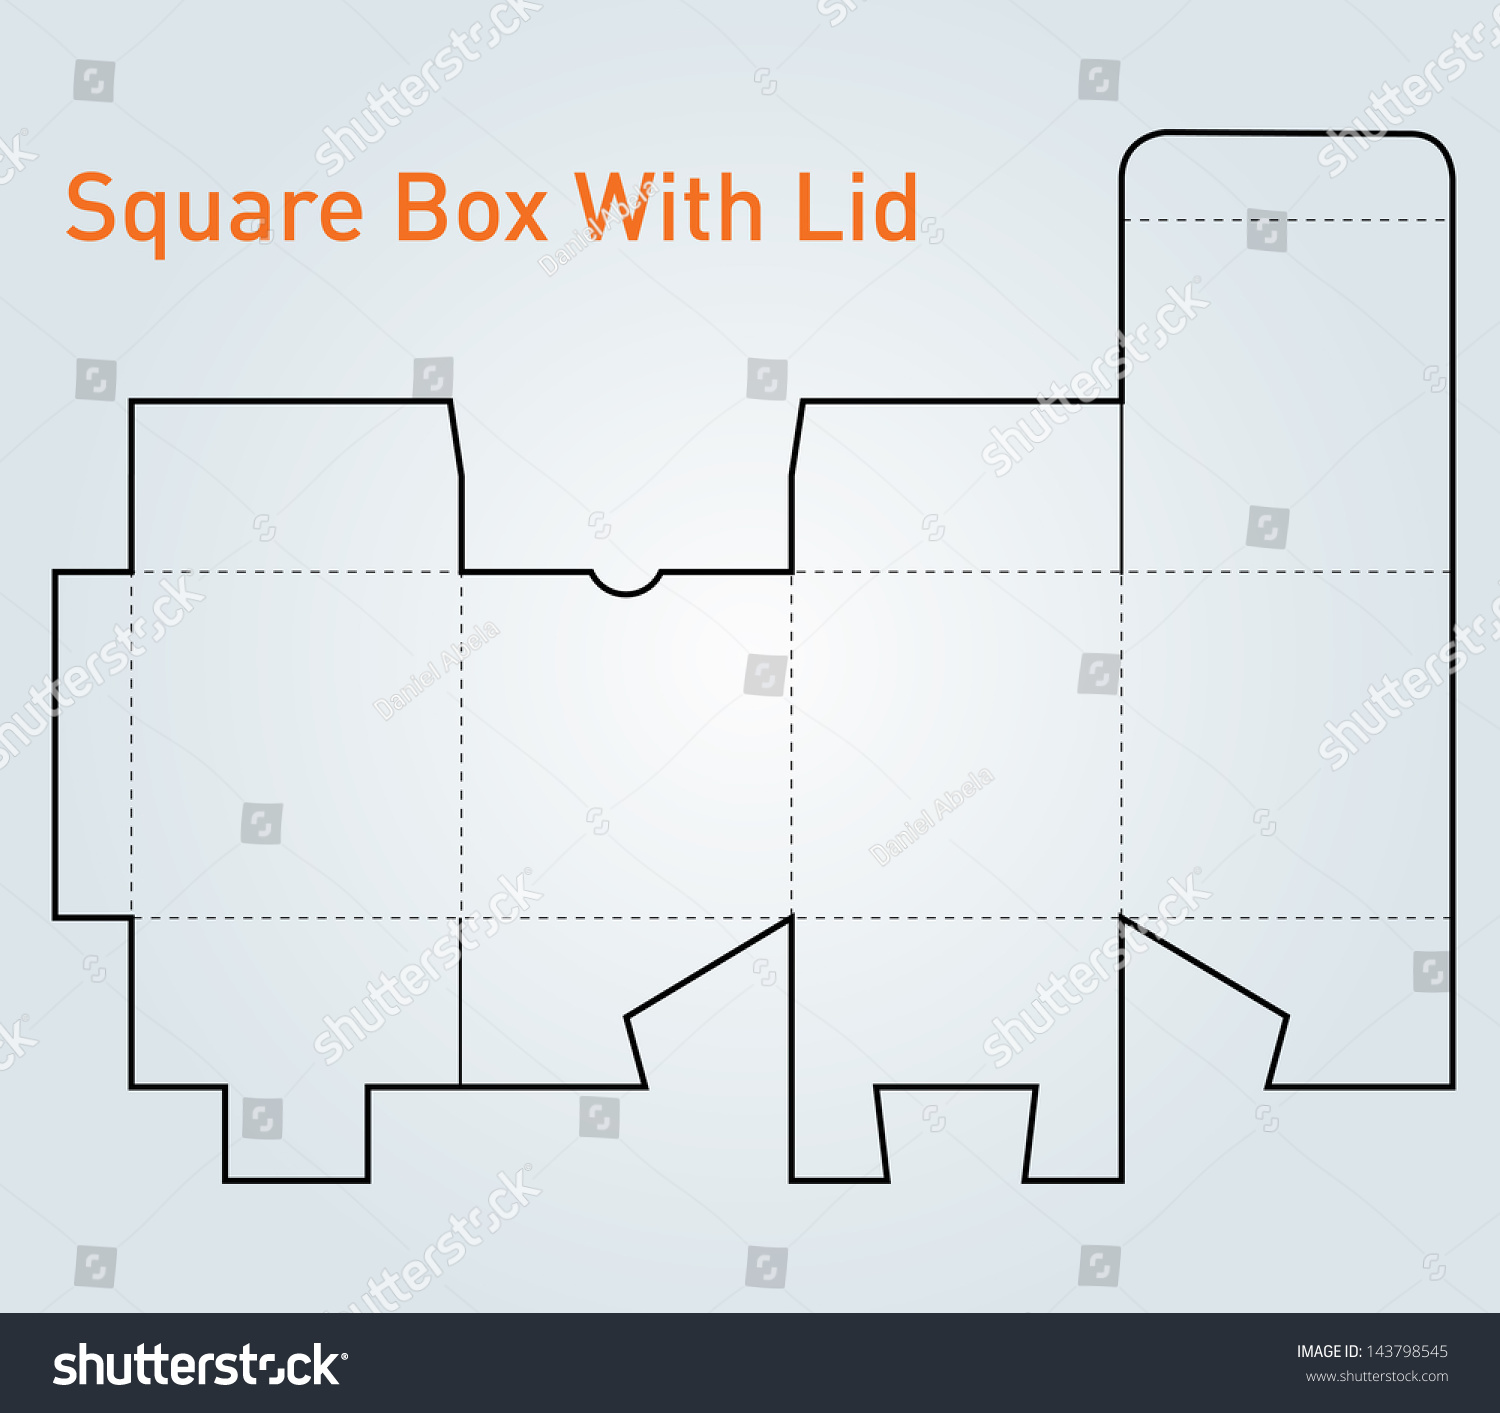 Packaging Square Box Lid Template Vector Stock Vector ...